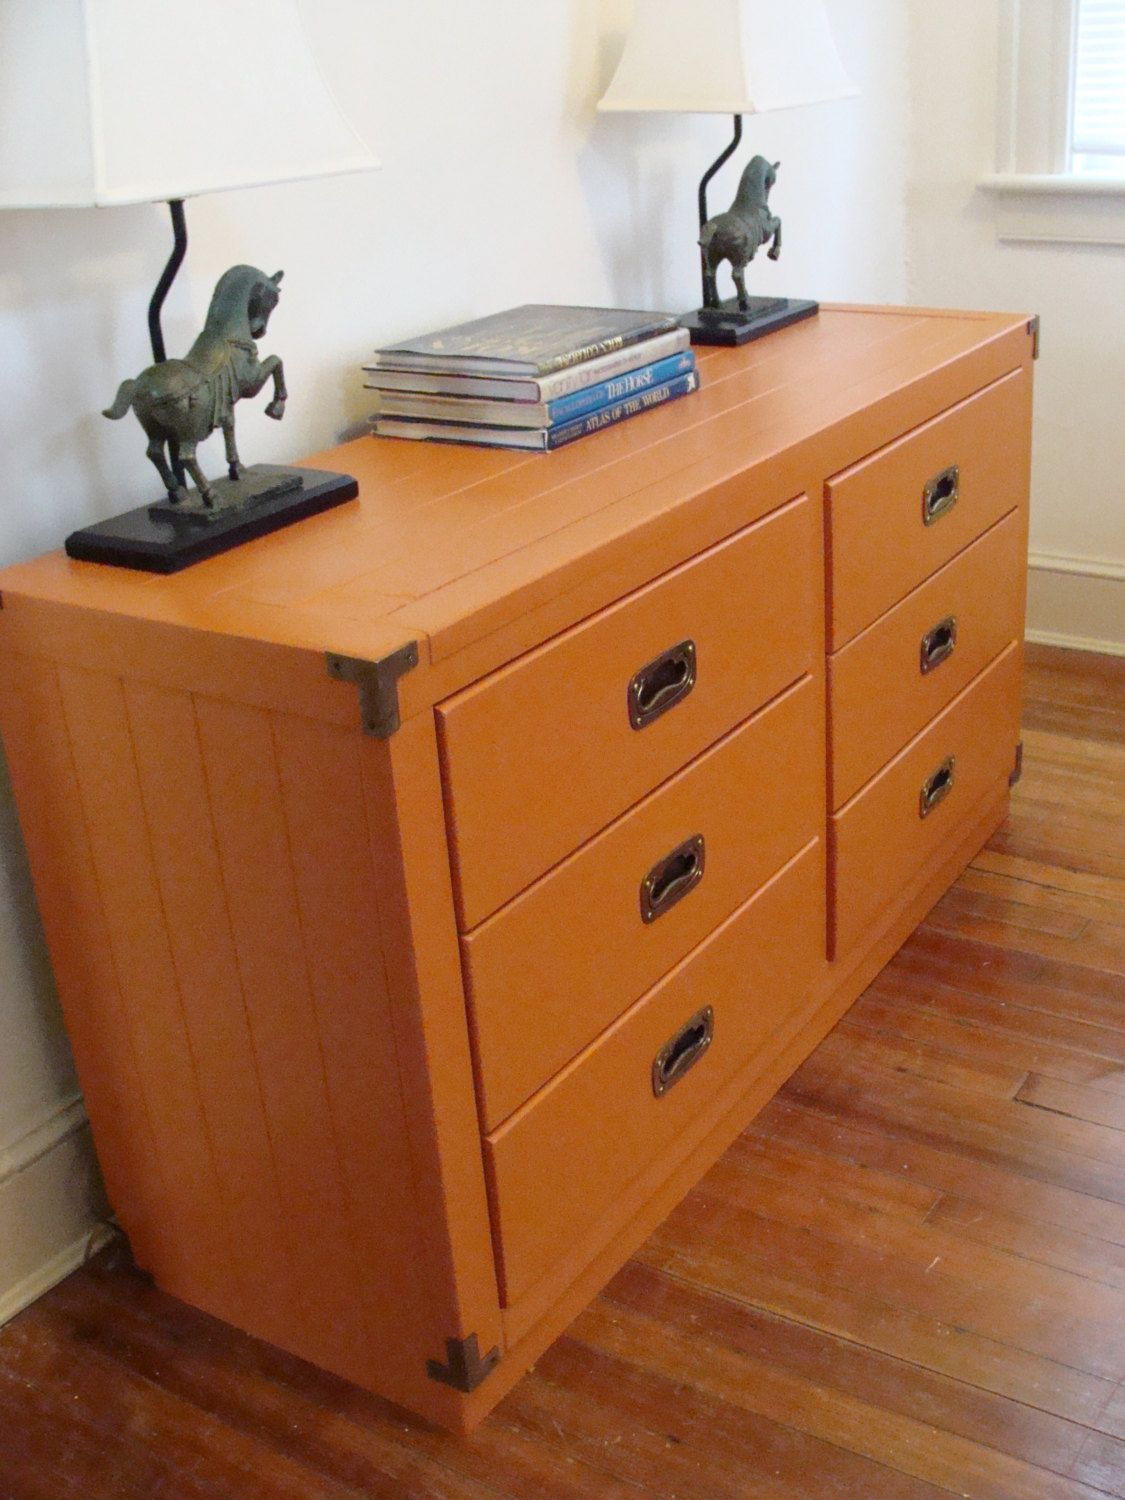 Vintage 6 Drawer Dresser Tangerine Young Hinkle Credenza Campaign Style Solid Wood Chest SOLD Via Colorful FurniturePainted